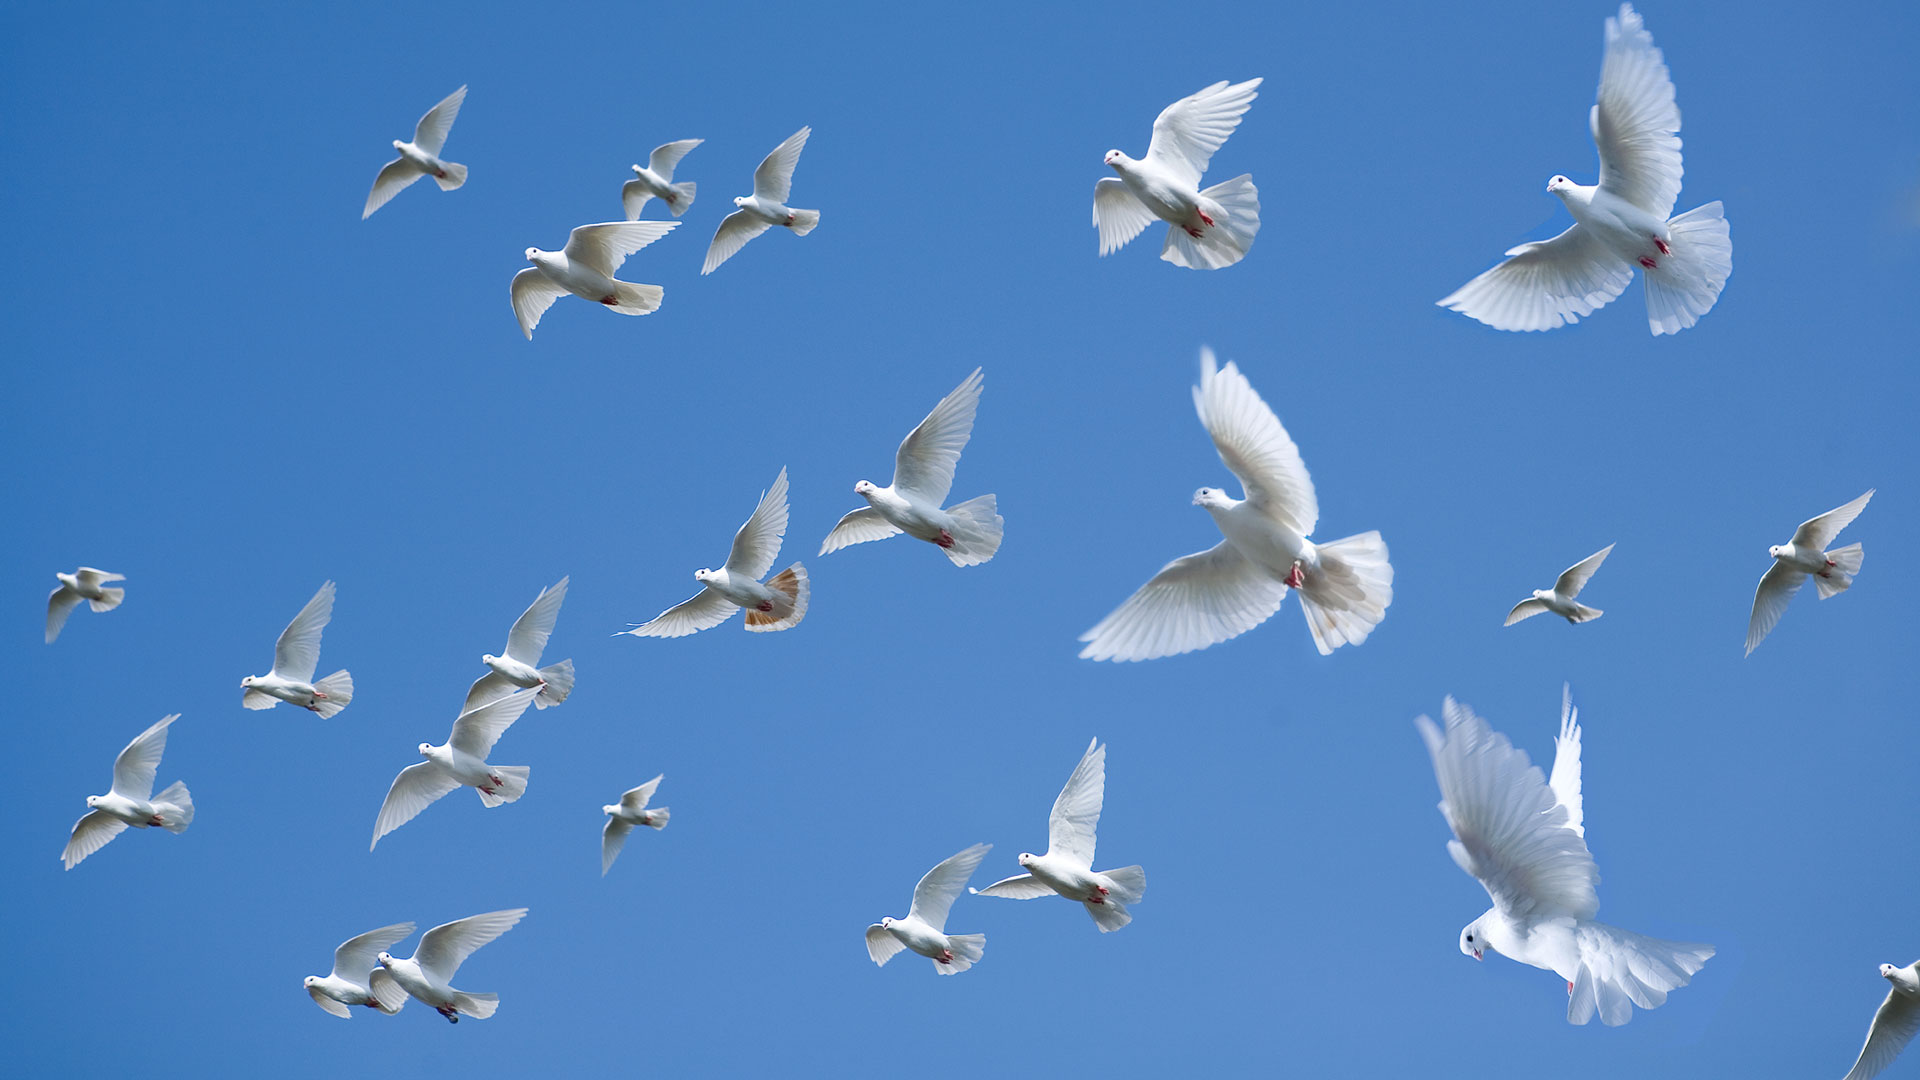 Flock our our white doves flying through the sky.